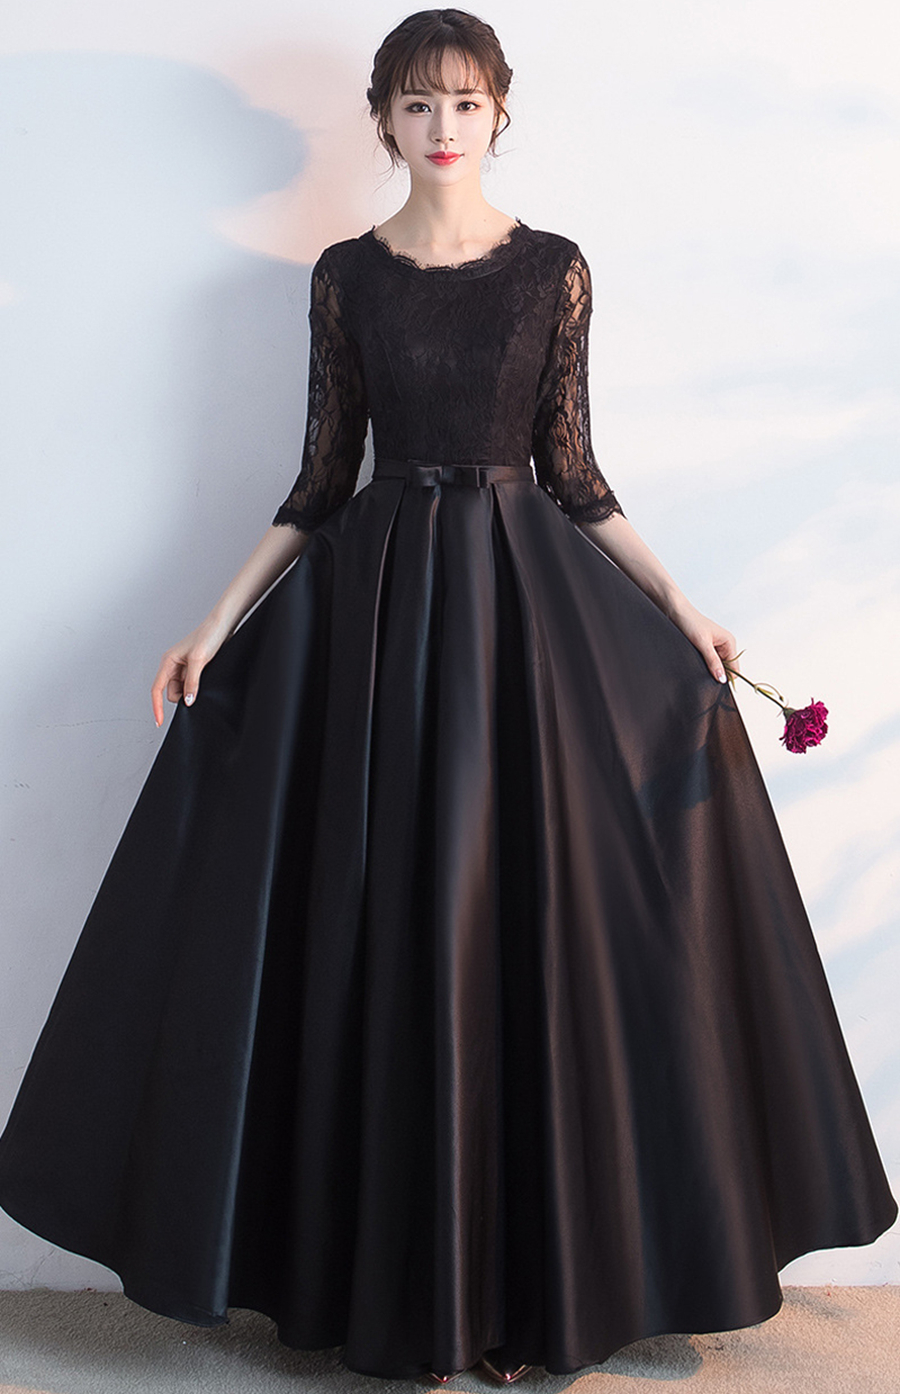 New Half Lace Sleeve O neck Sexy Evening Dresses 2020 Black Belt Decoration Fashion Luxury Formal Royal Evening Gown For Women